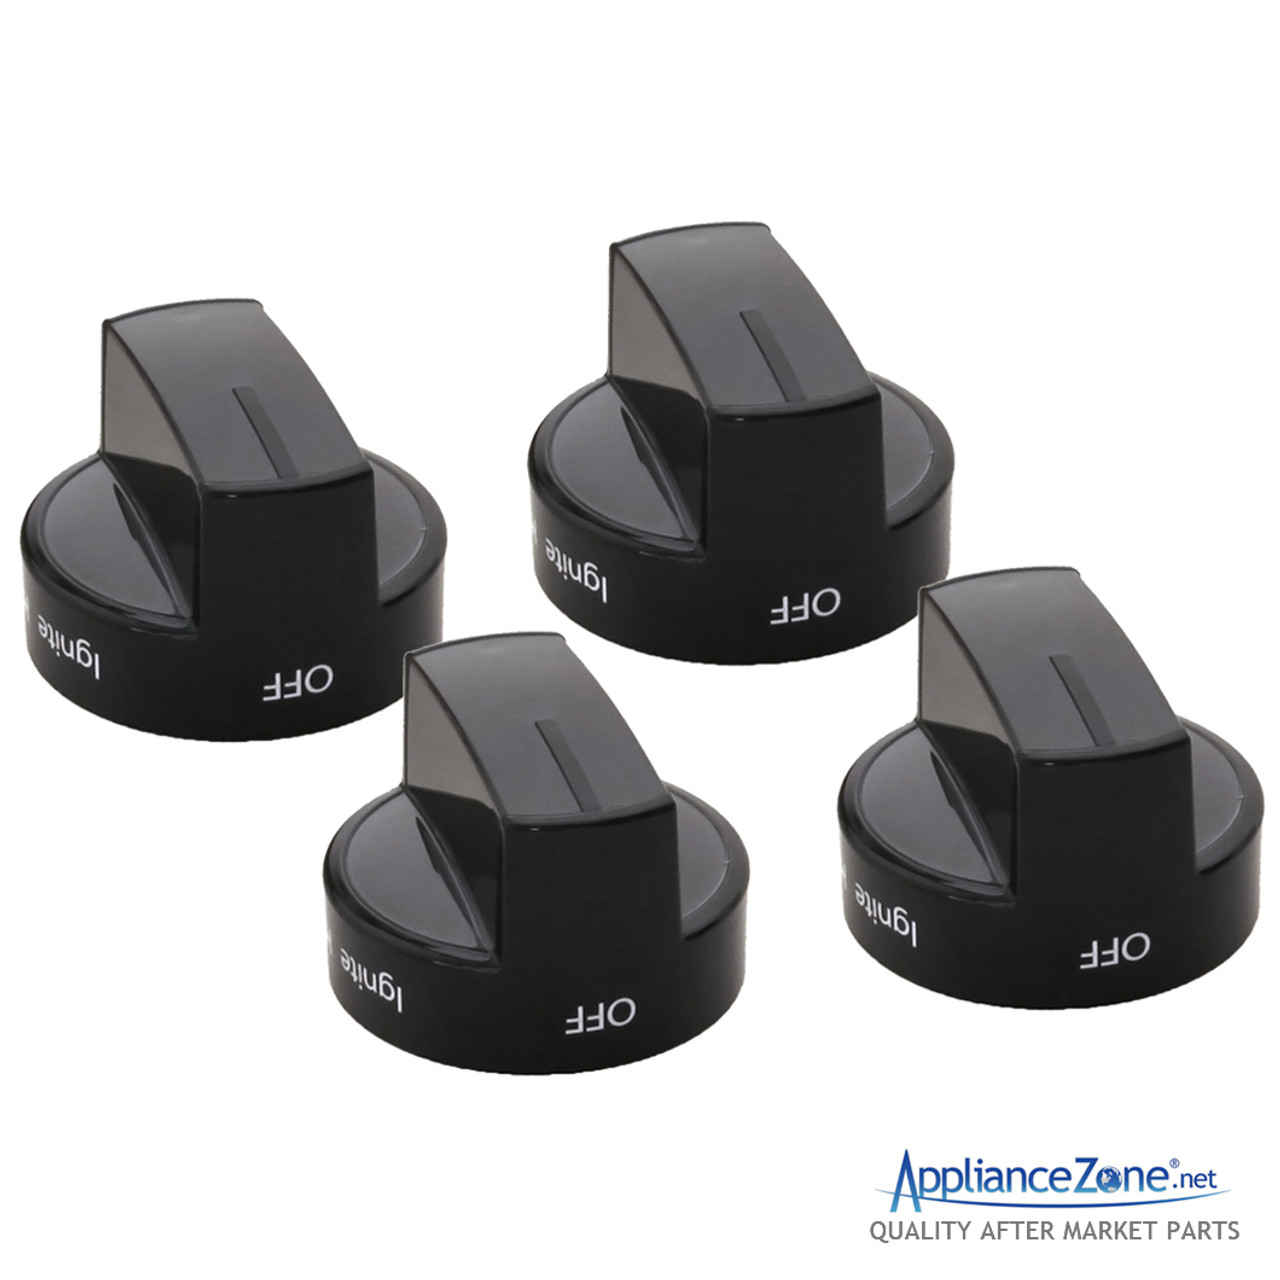 4 Pack Oven and Range Infinite Knob Replacement Part For Whirlpool